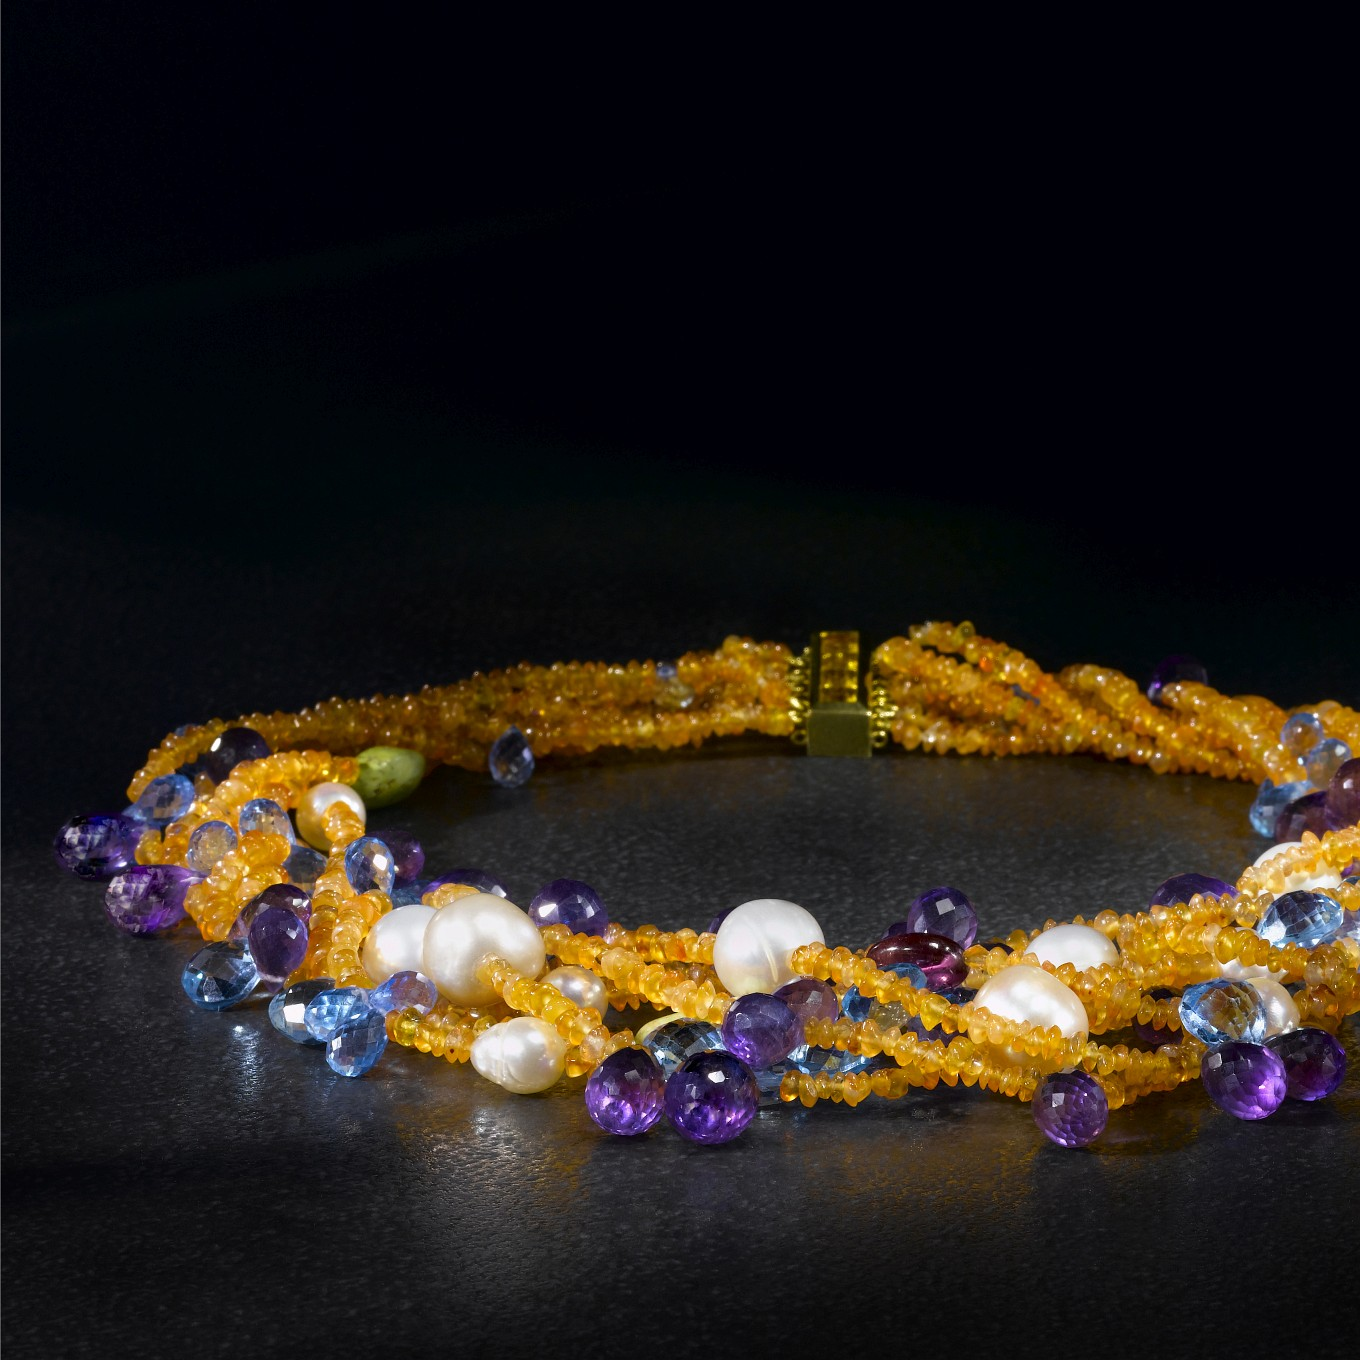 FROM A COLLECTION OF MULTISTONE CHOKERS: CARNELIAN, AMETHYST, BLUE TOPAZ, RUBELLITE, PEARL & GREEN TOURQUOISE NECKLACE WITH CITRINE BAR CLASP